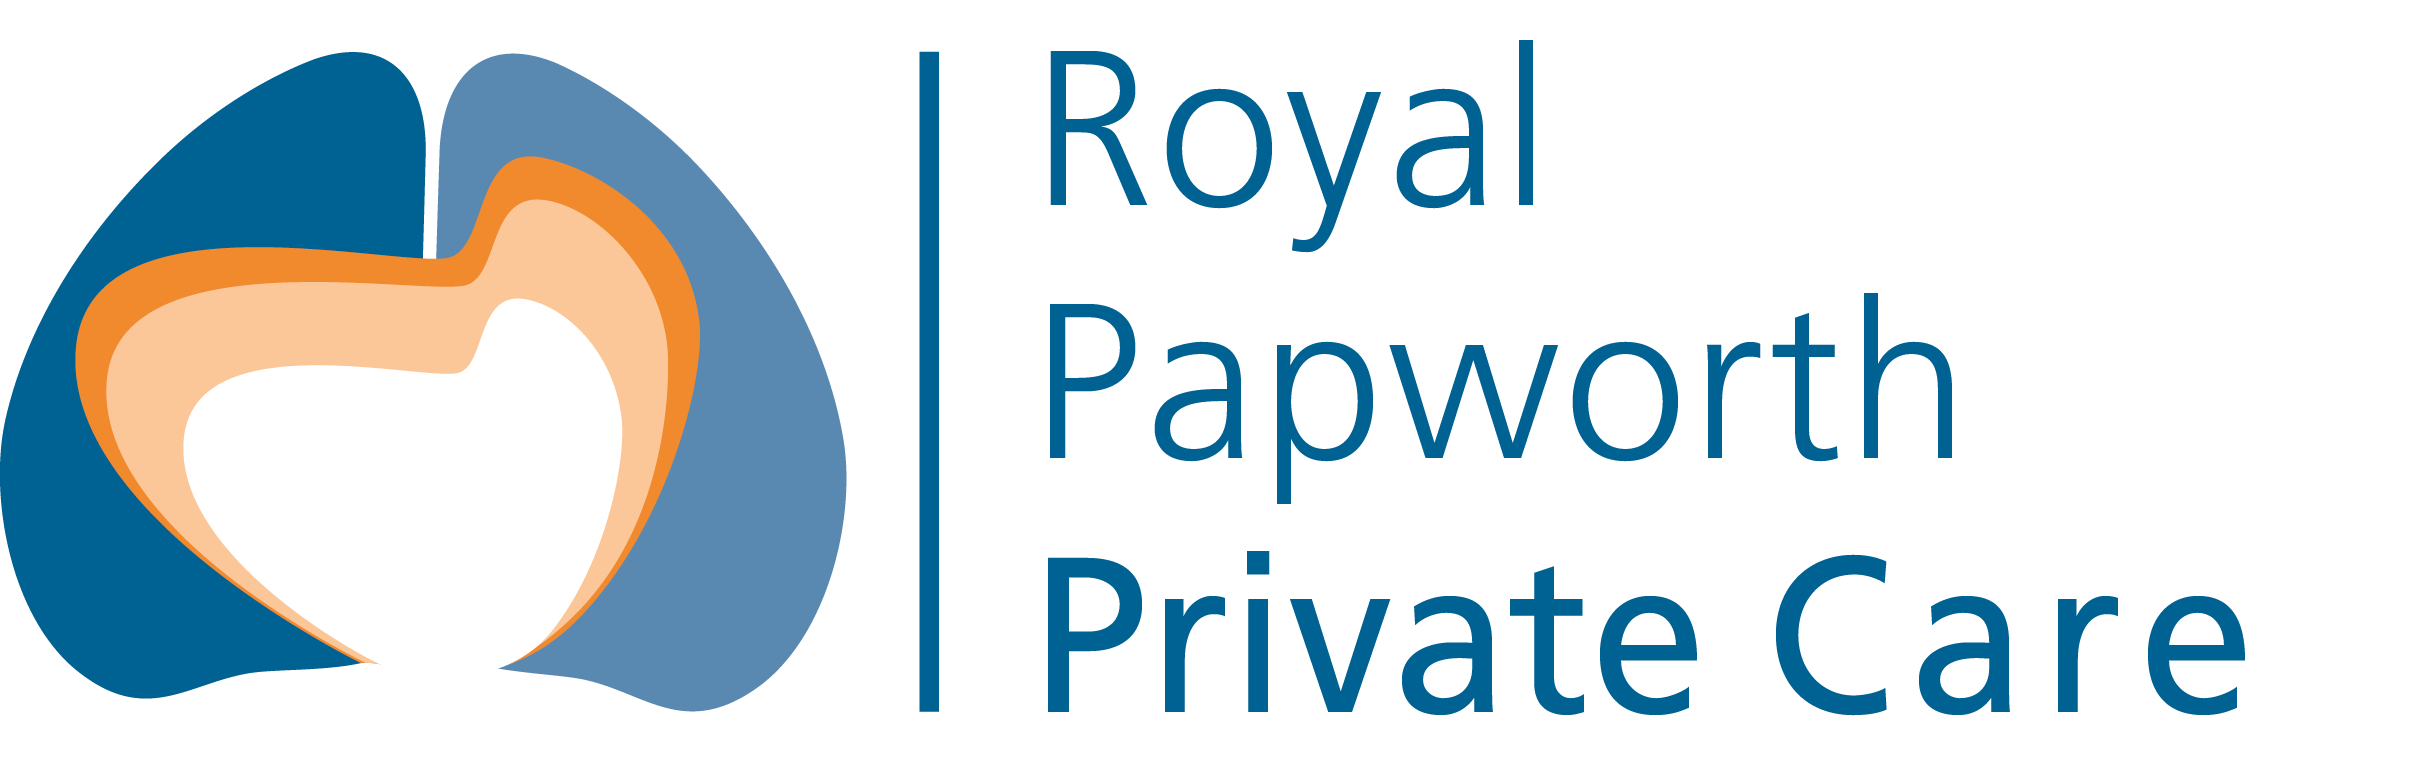 Private Care :: Royal Papworth Hospital